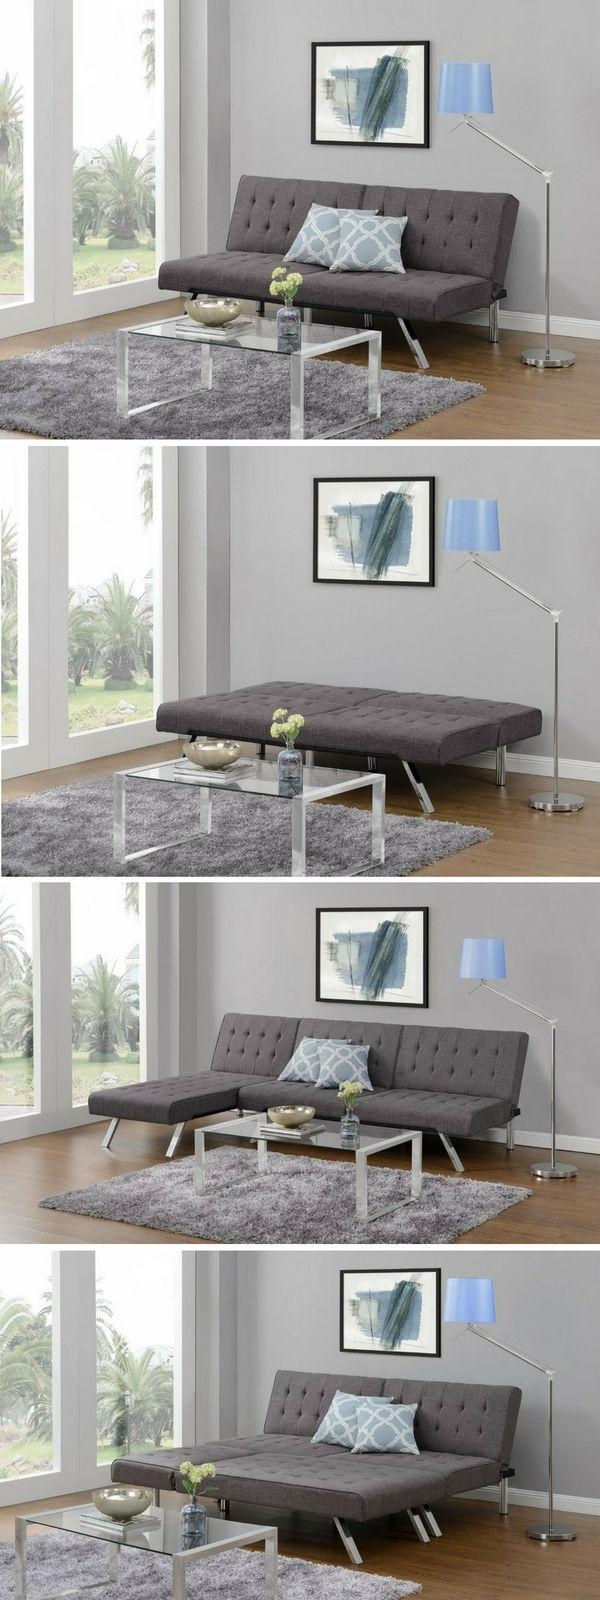 Best 25+ Sofa Beds Ideas On Pinterest | Sofa With Bed With Small Bedroom Sofas (View 12 of 20)